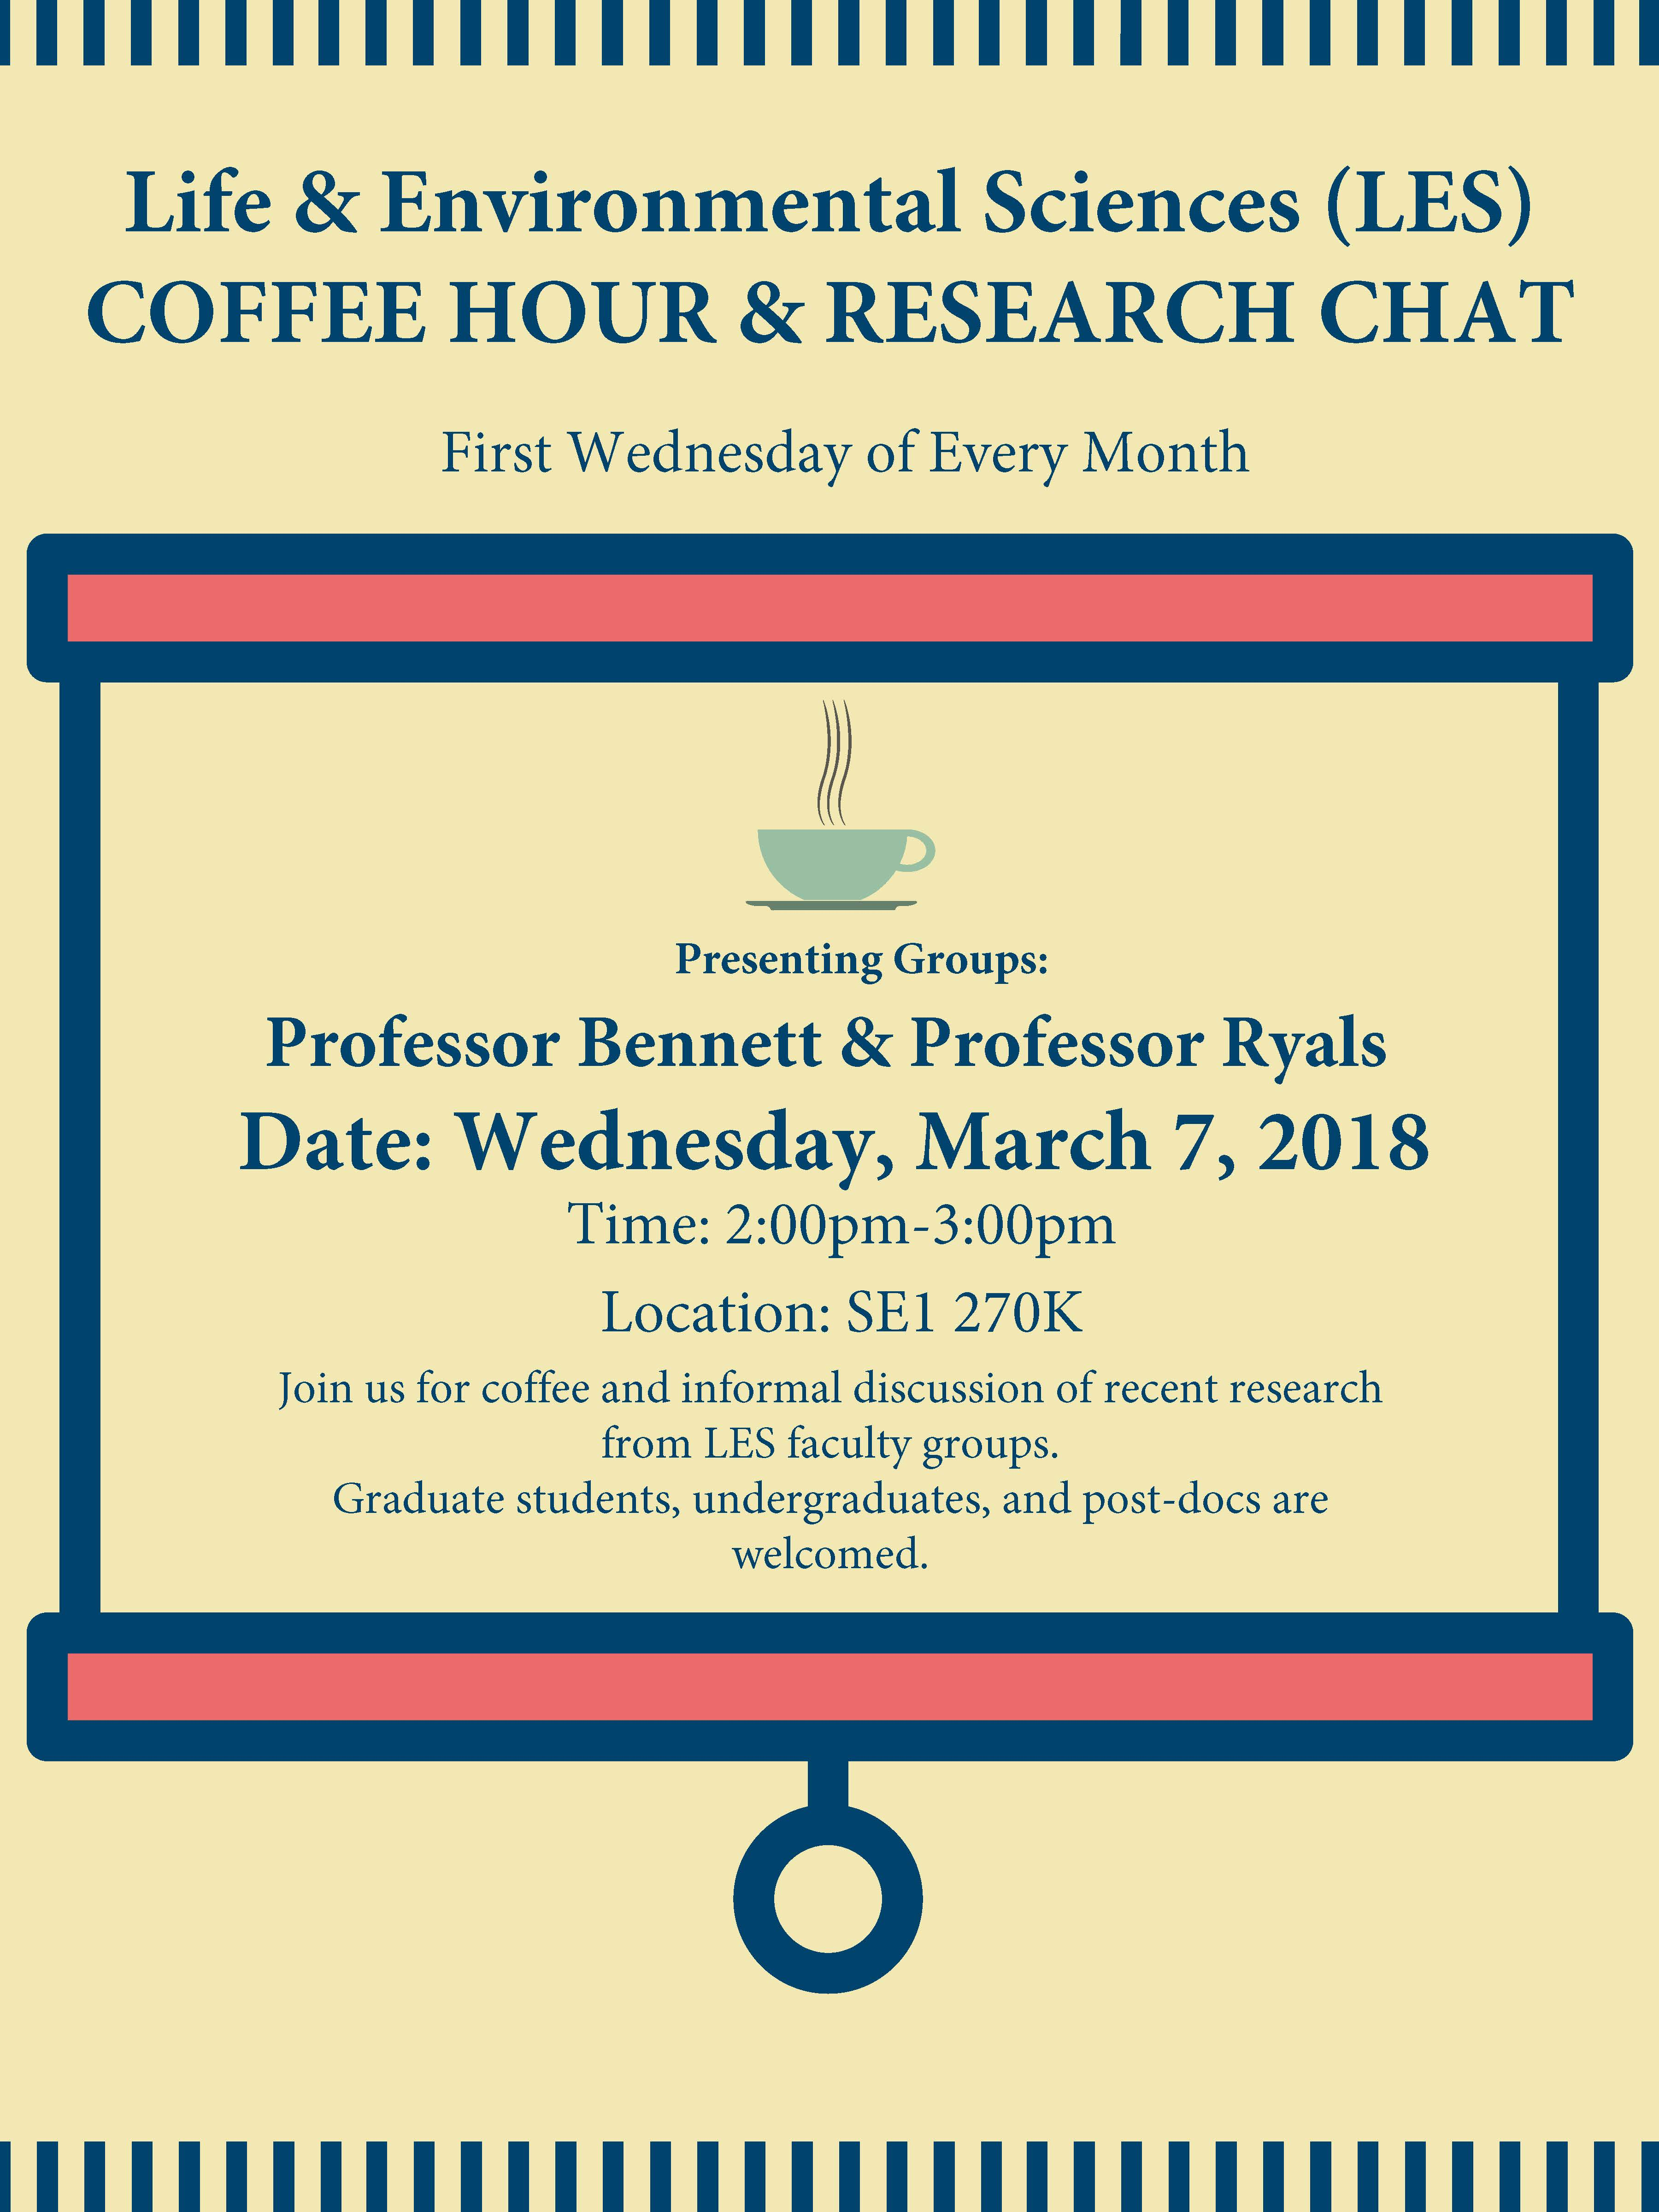 LES Coffee Hour/ Research Chat